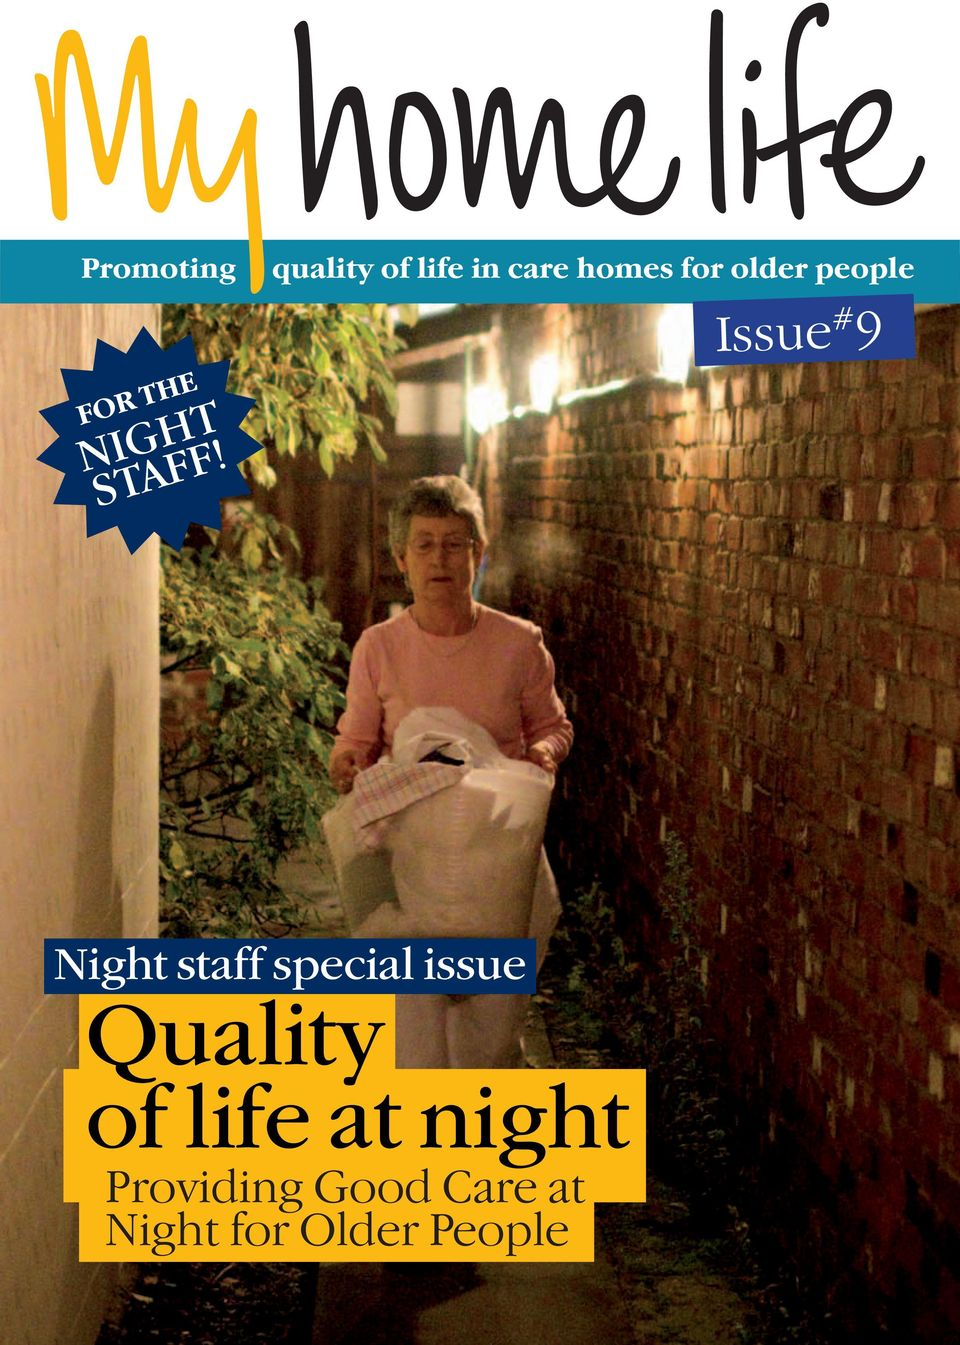 people Issue # 9 Night staff special issue